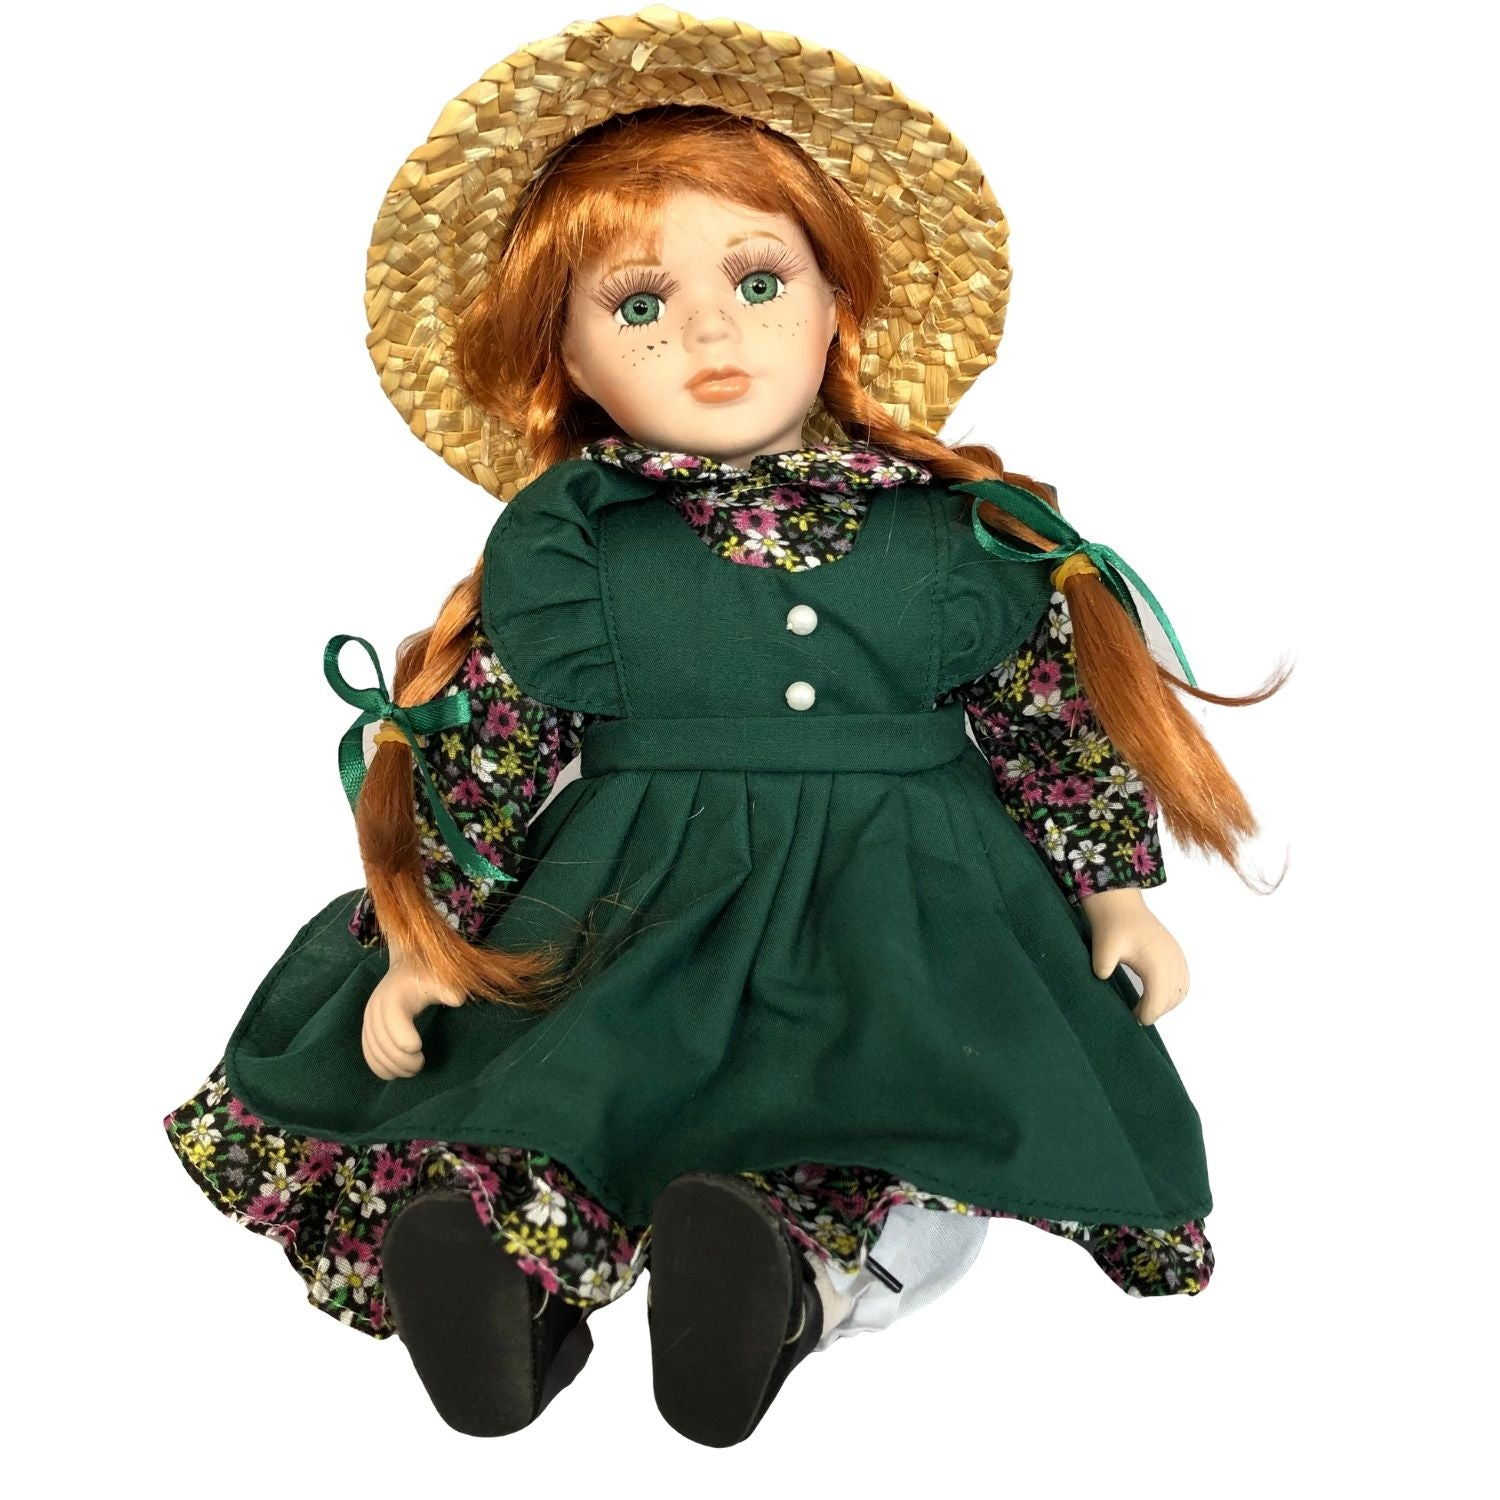 Anne of green gables musical porcelain doll